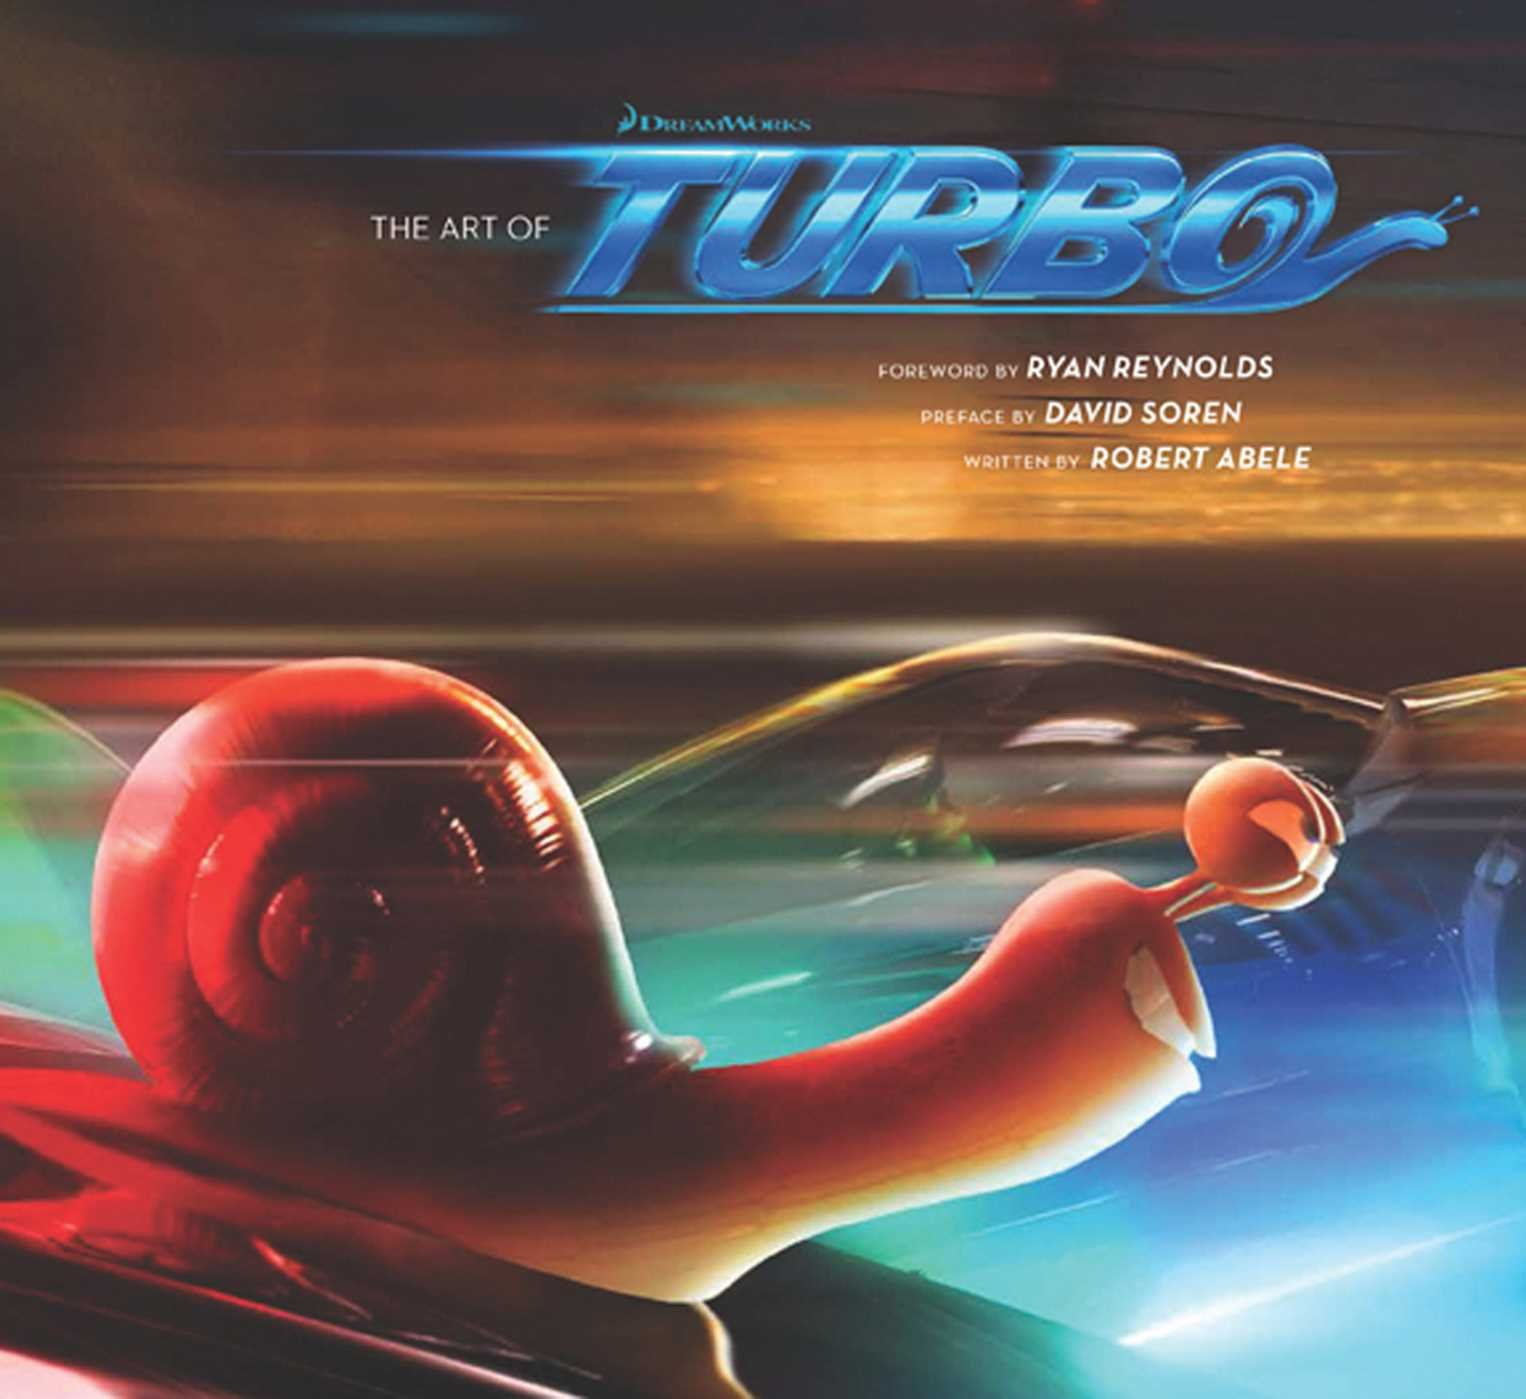 The Art of Turbo: Amazon.es: Robert Abele, David Soren, Ryan Reynolds: Libros en idiomas extranjeros